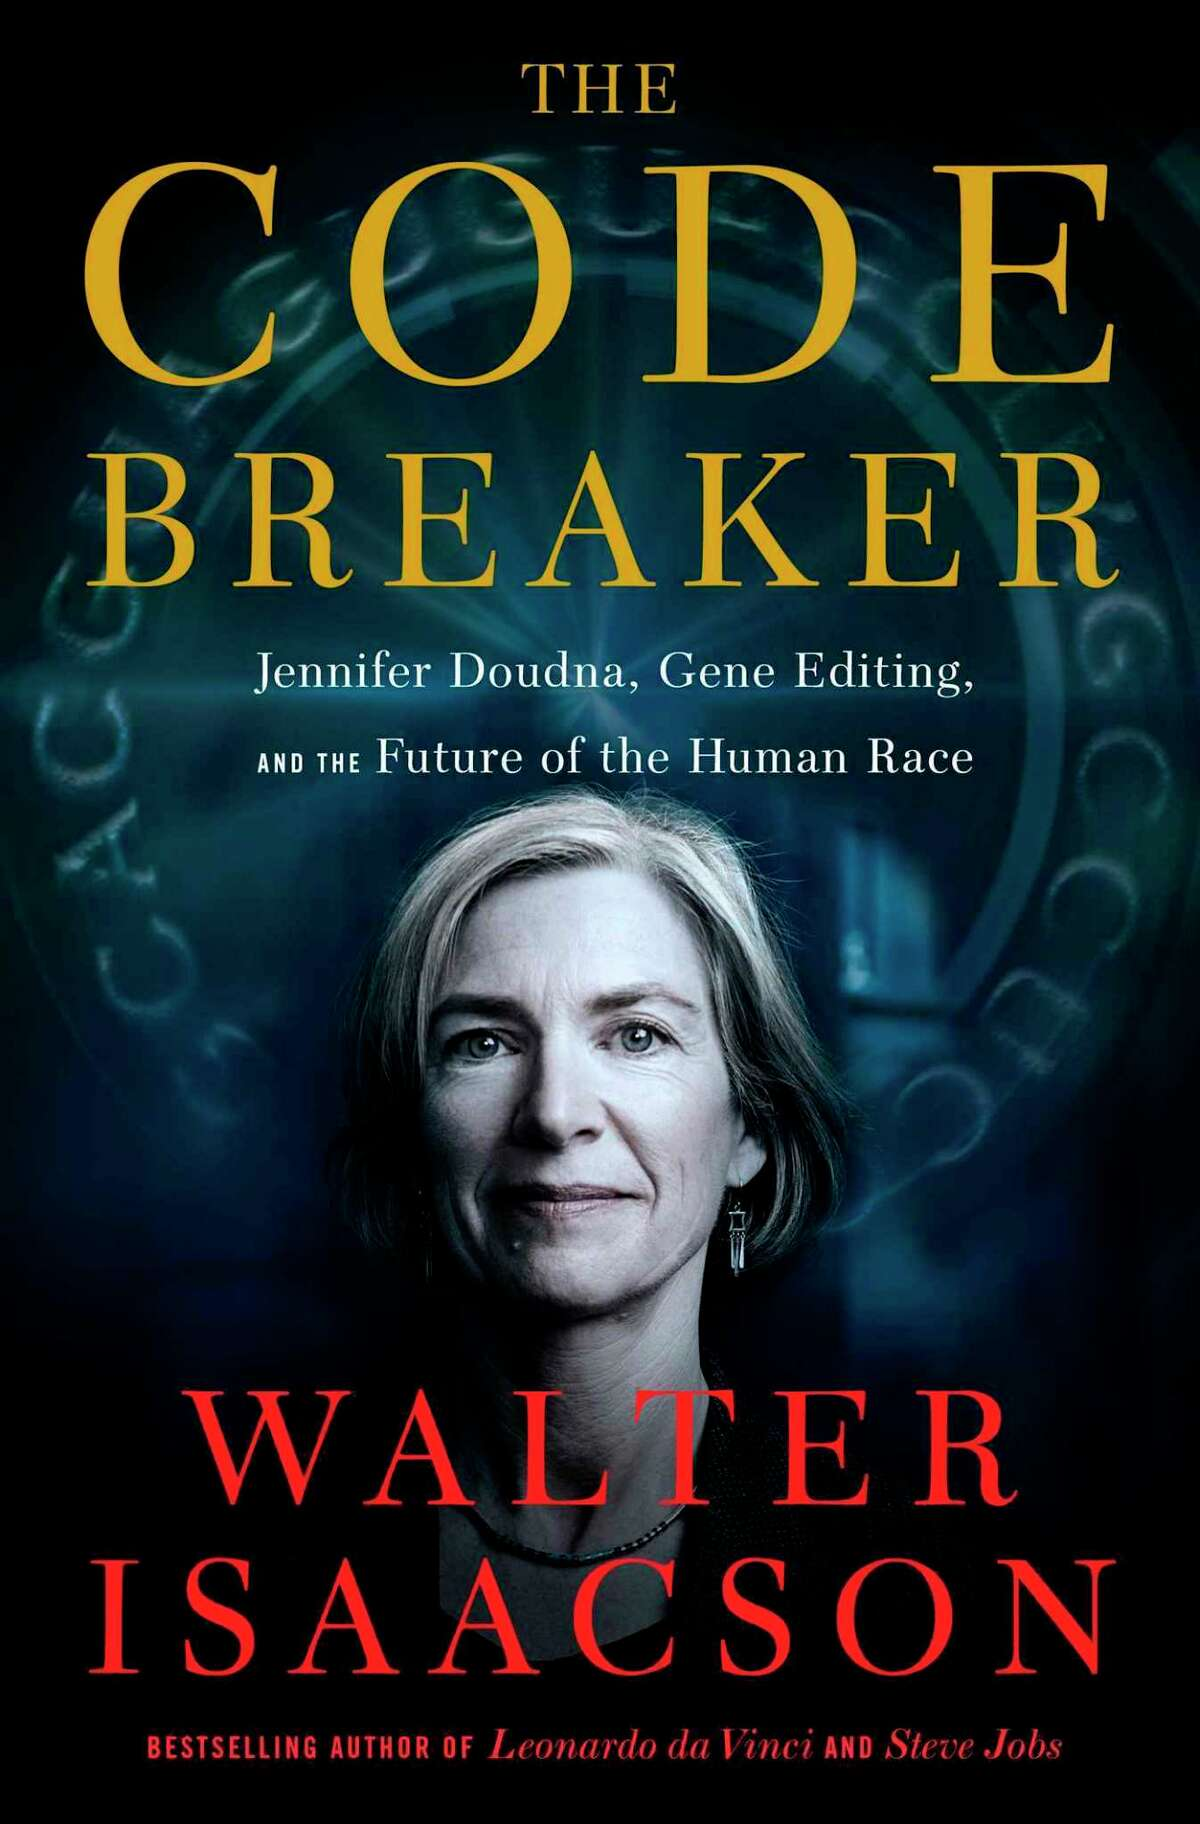 """""""The Code Breaker: Jennifer Doudna, Gene Editing and the Future of the Human Race"""" by Walter Isaacson."""